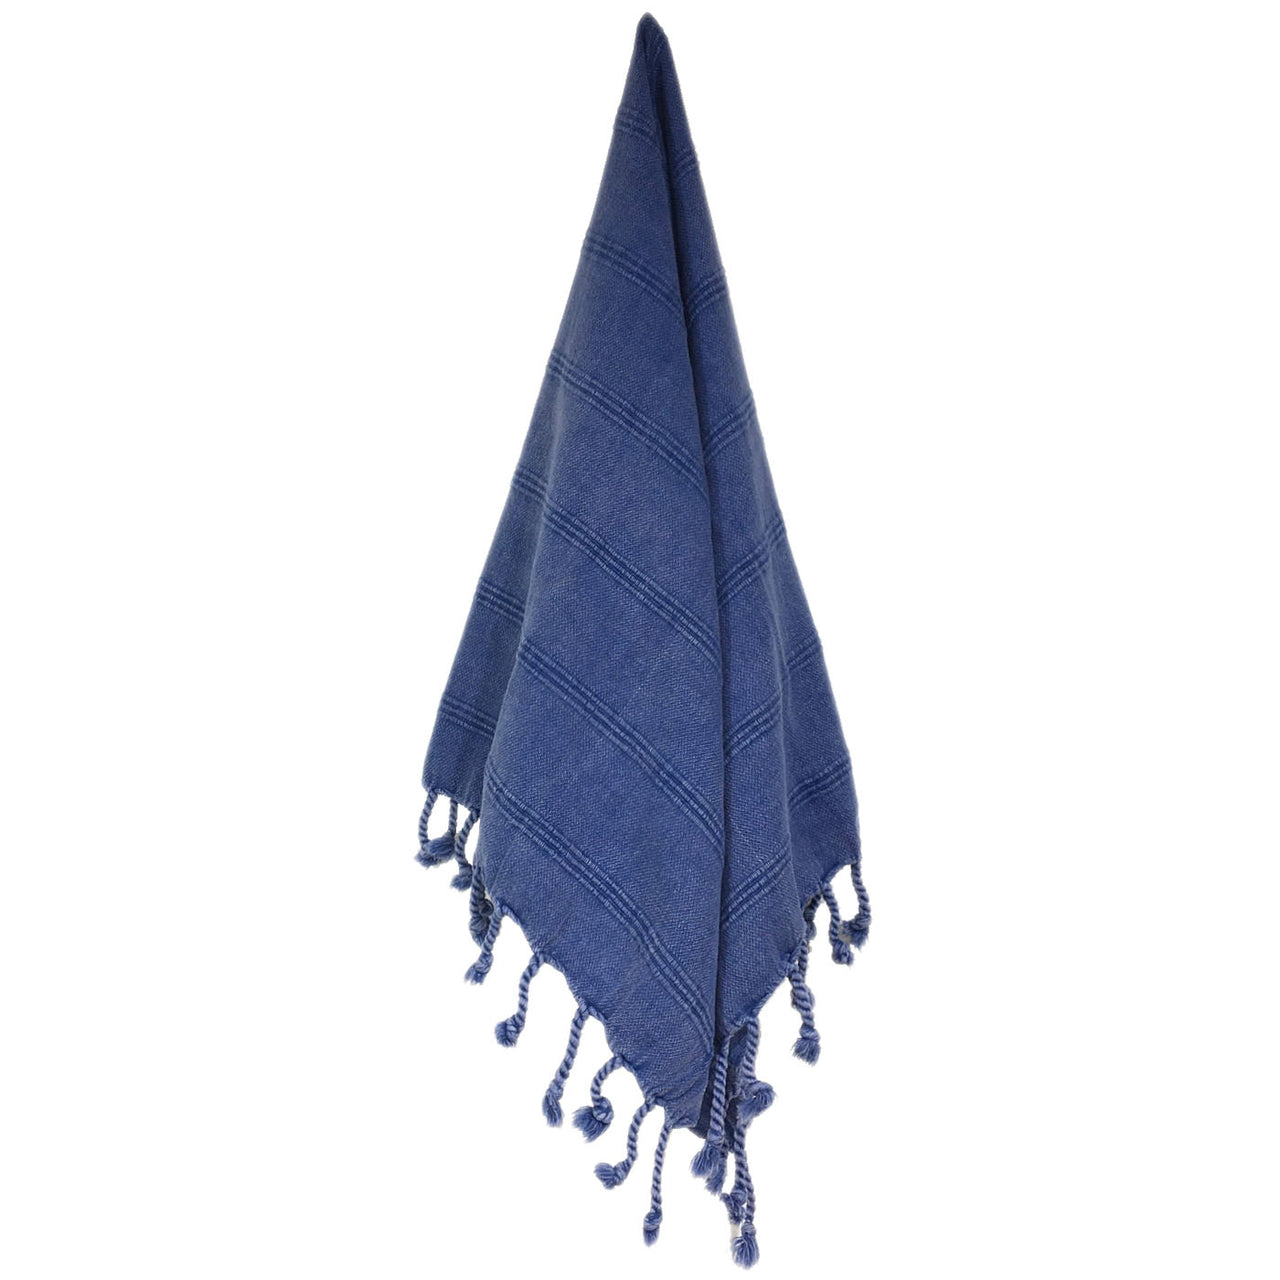 Stonewash Turkish Hand Towel - Denim